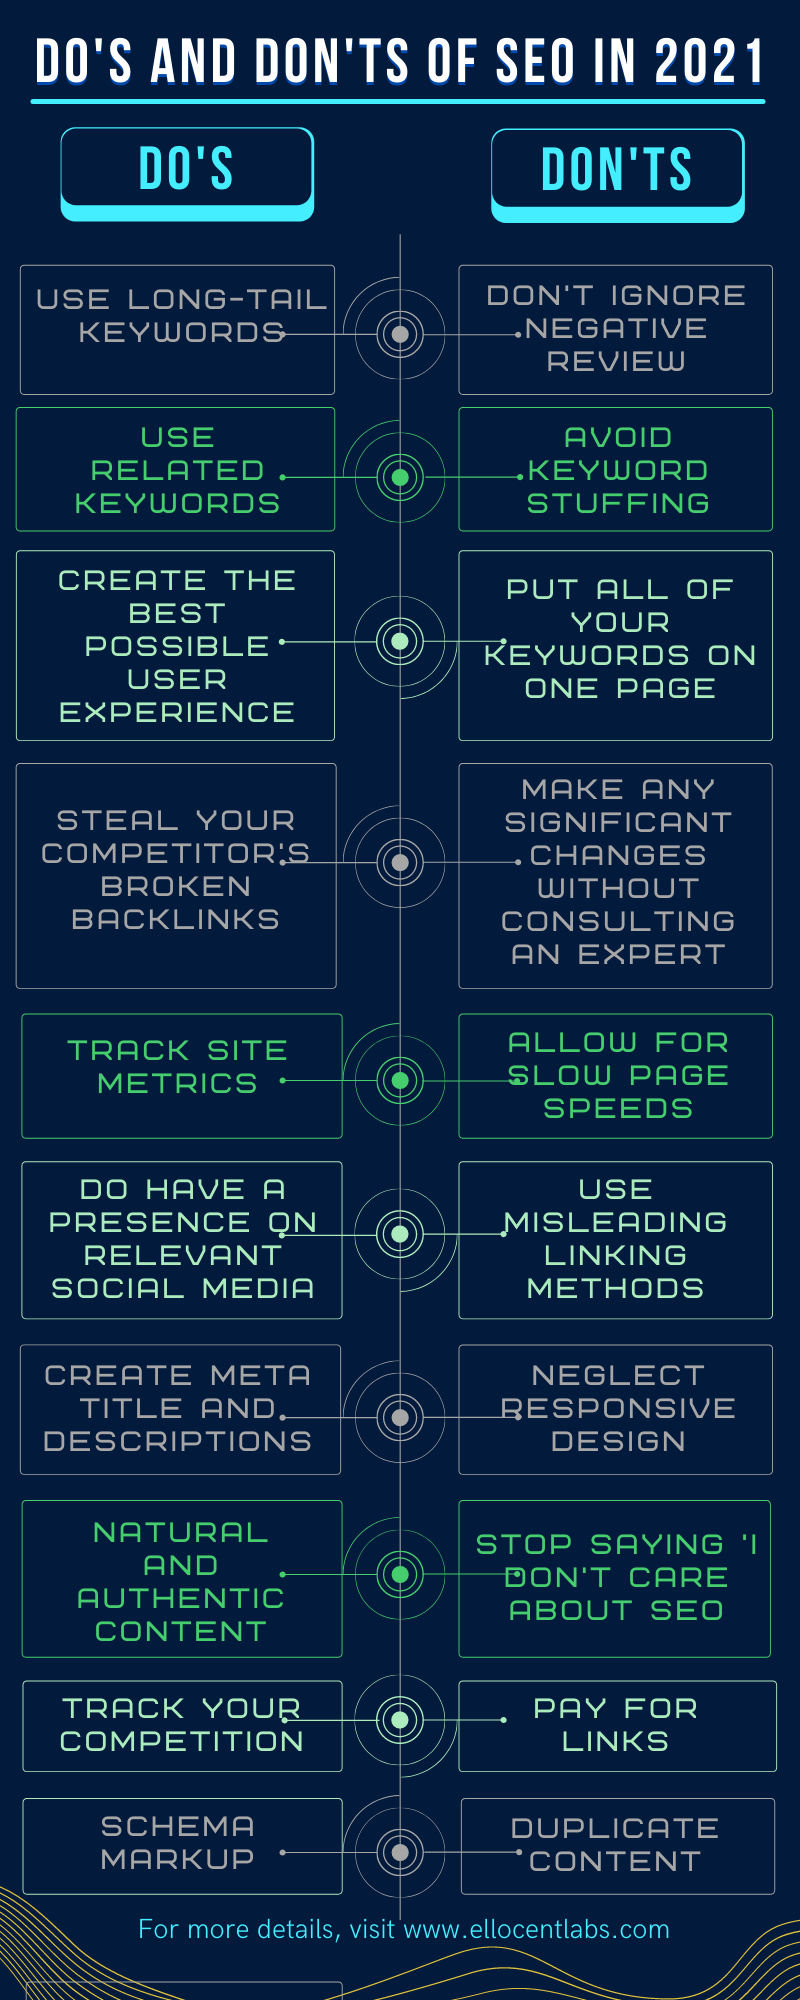 Do's and Don'ts of SEO in 2021